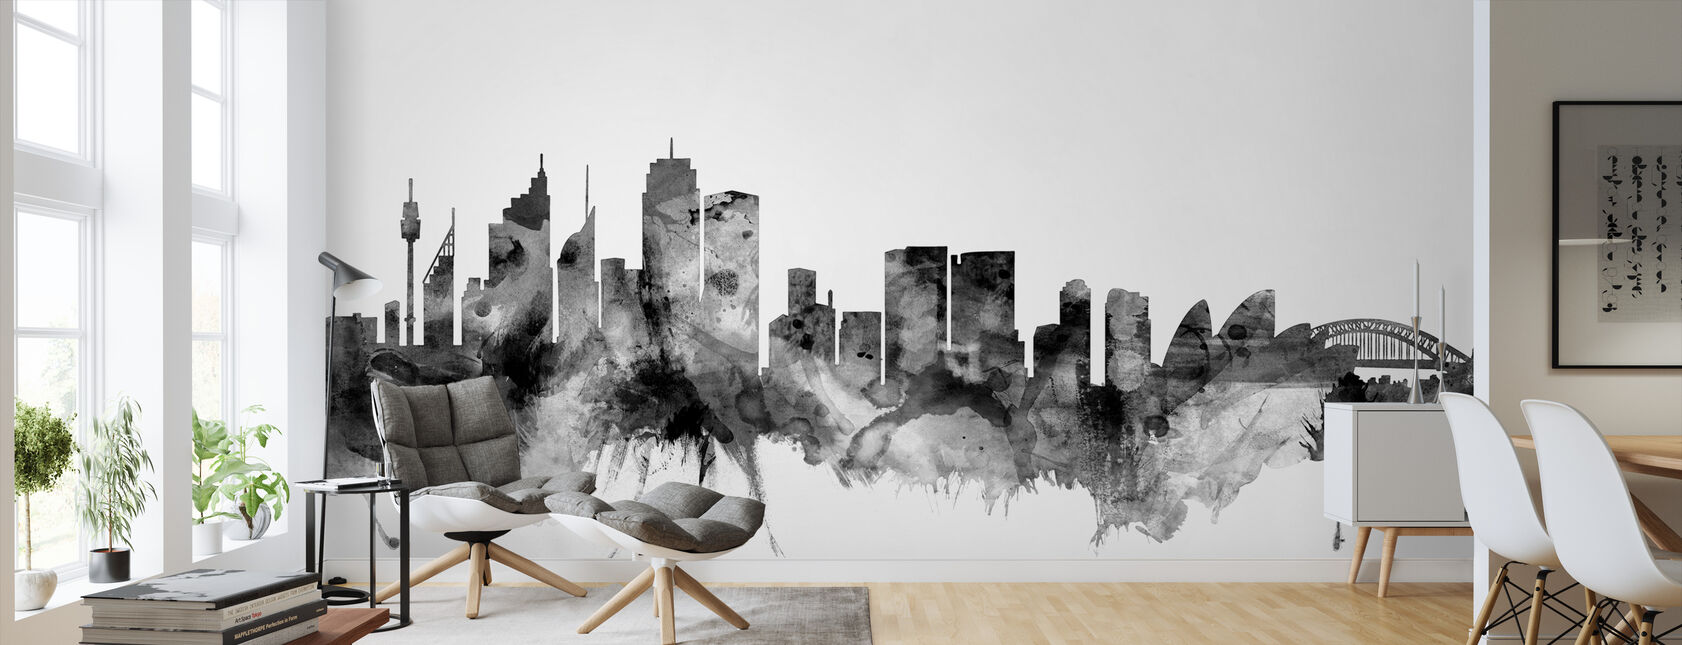 Sydney Australia Skyline Black - Wallpaper - Living Room